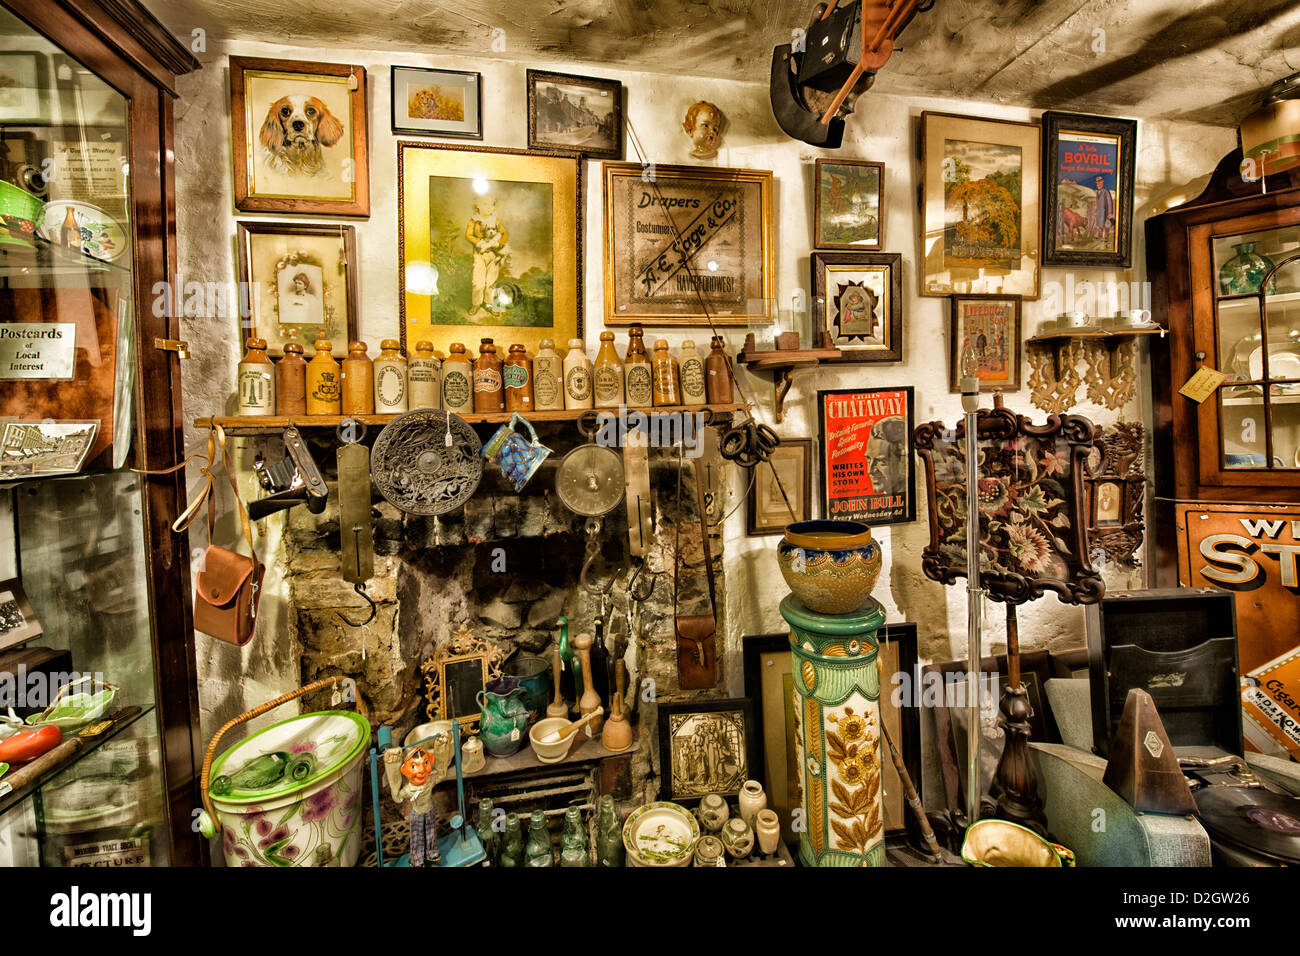 Bric a brac antiques collectibles on display for sale in shop west stock photo royalty free - Broc a brac 51 ...